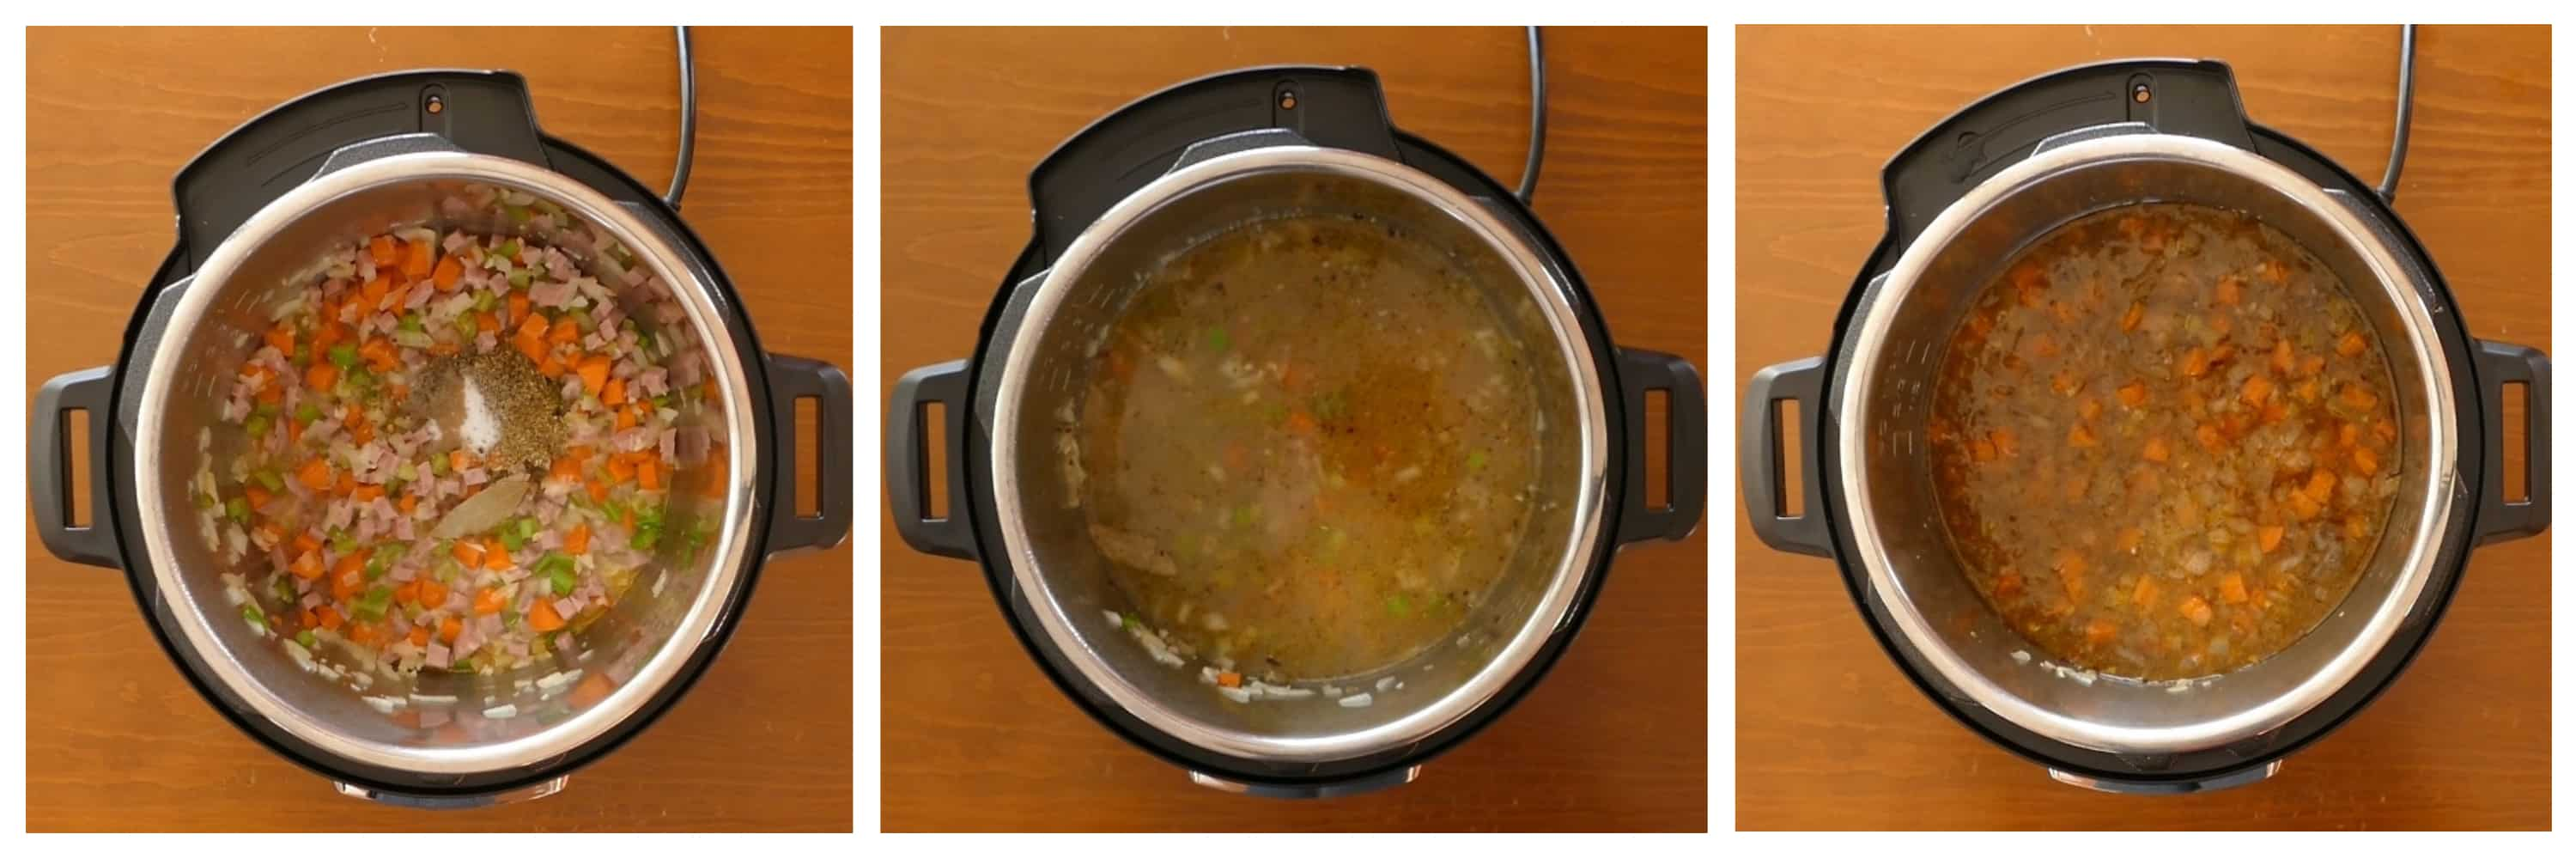 Instant Pot Italian Wedding Soup Instructions - spices, broth, stirred - Paint the Kitchen Red